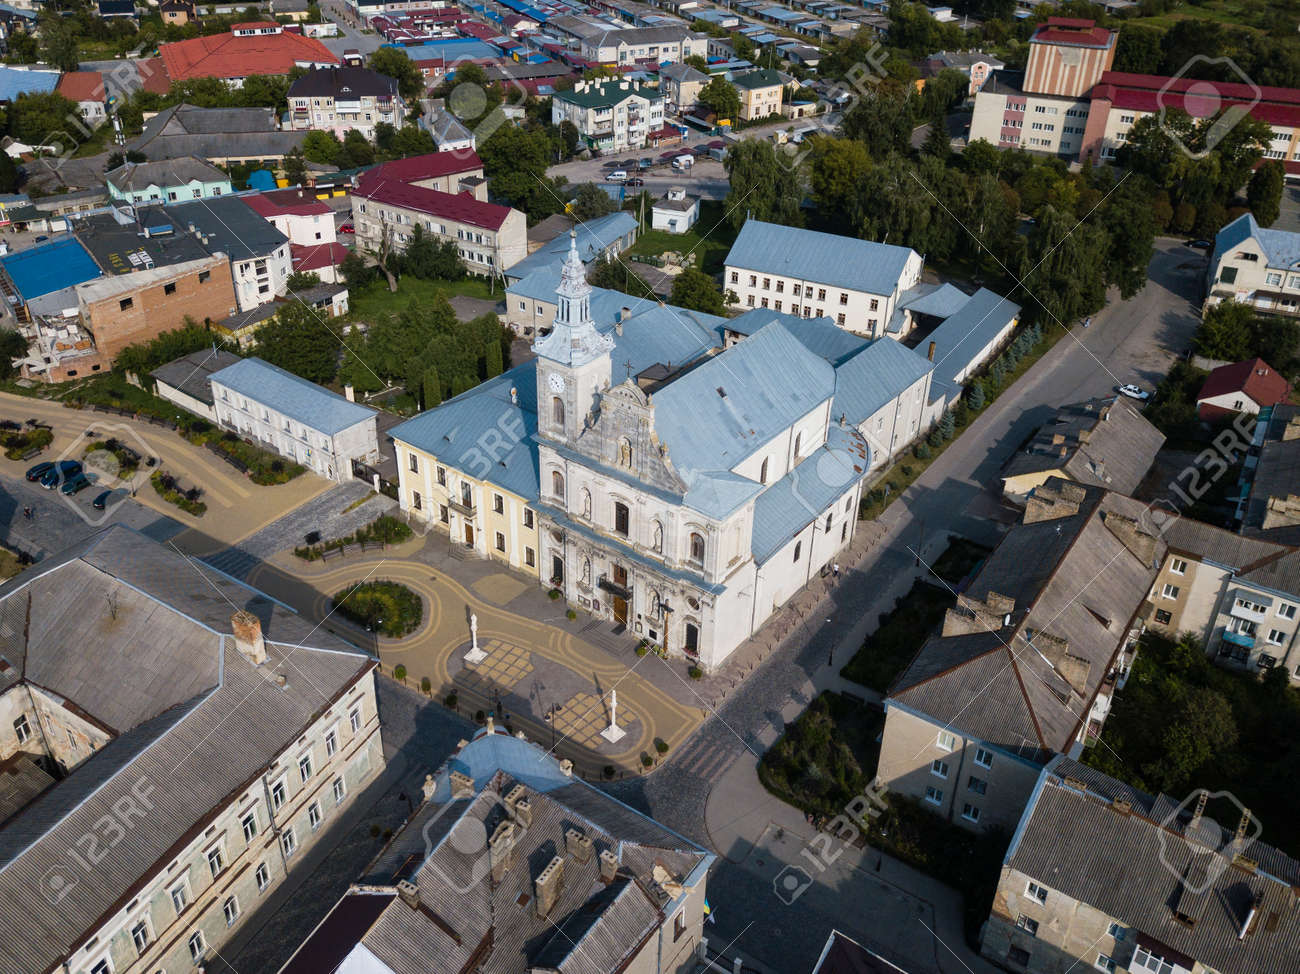 Aerial view to Church of the Assumption of Blessed Virgin Mary and center of historical city Zolochiv, Lviv region, Ukraine - 169051594